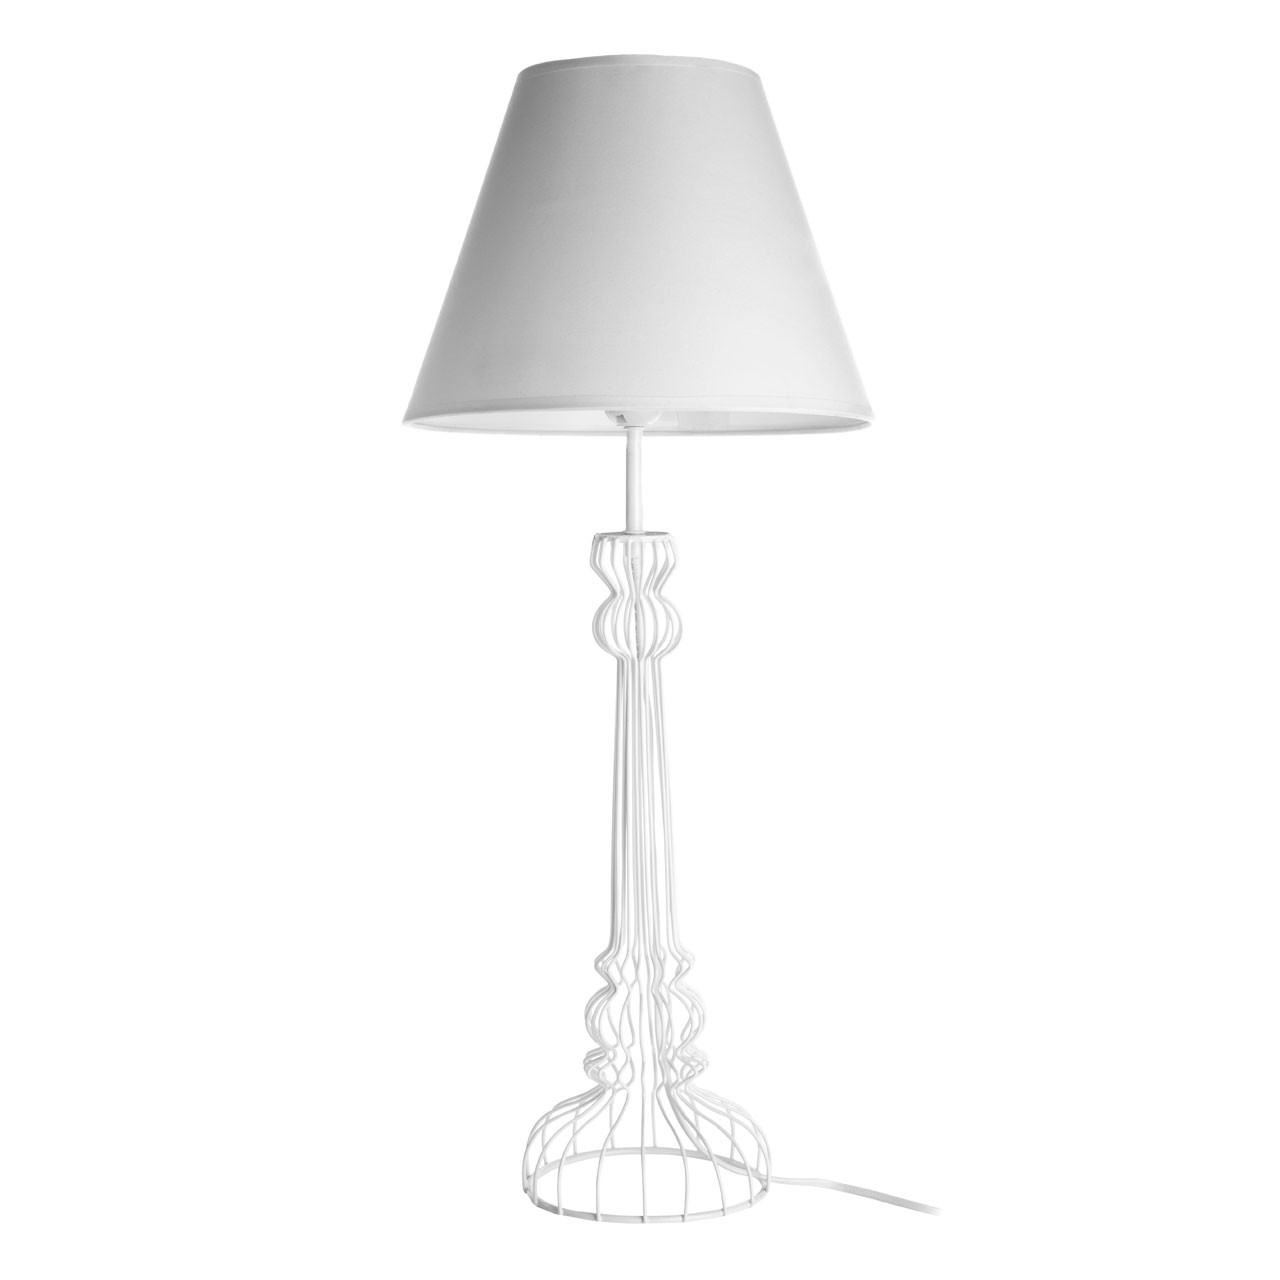 Prime Furnishing Chicago Table Lamp, Metal Wire Base - White